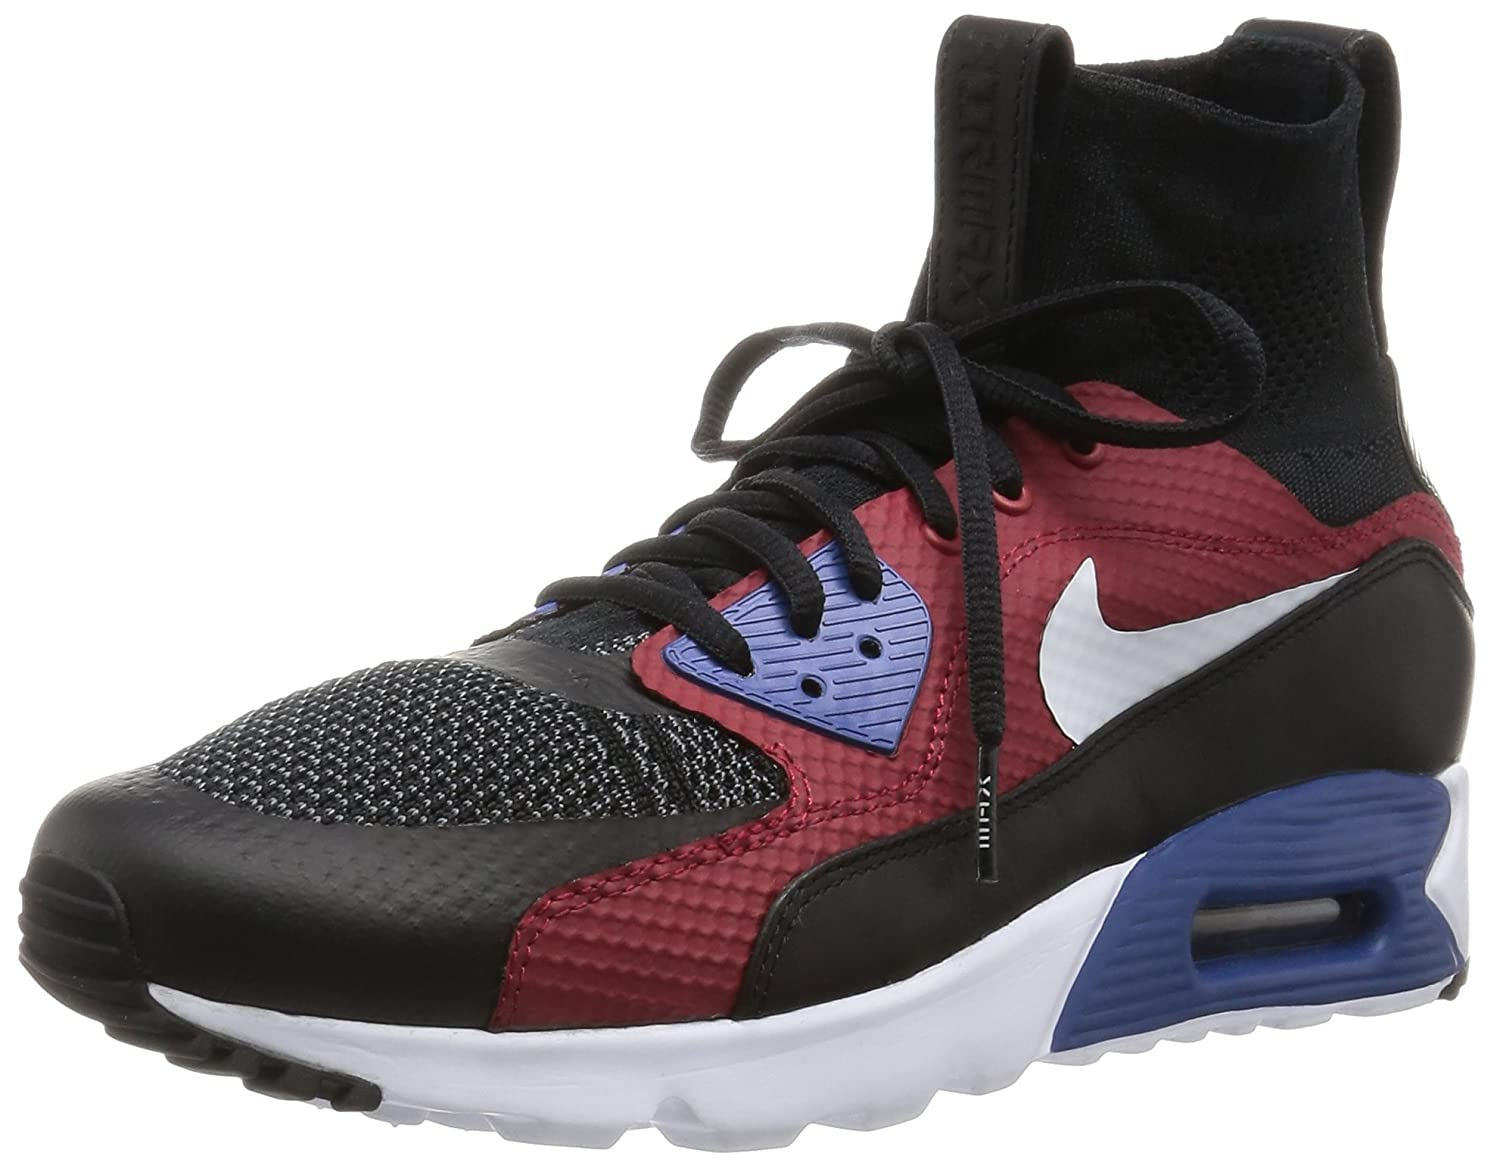 online store 26673 dca15 ... new style amazon nike air max 90 superfly by tinker hatfield 850613 001  running 2a809 7fd67 ...